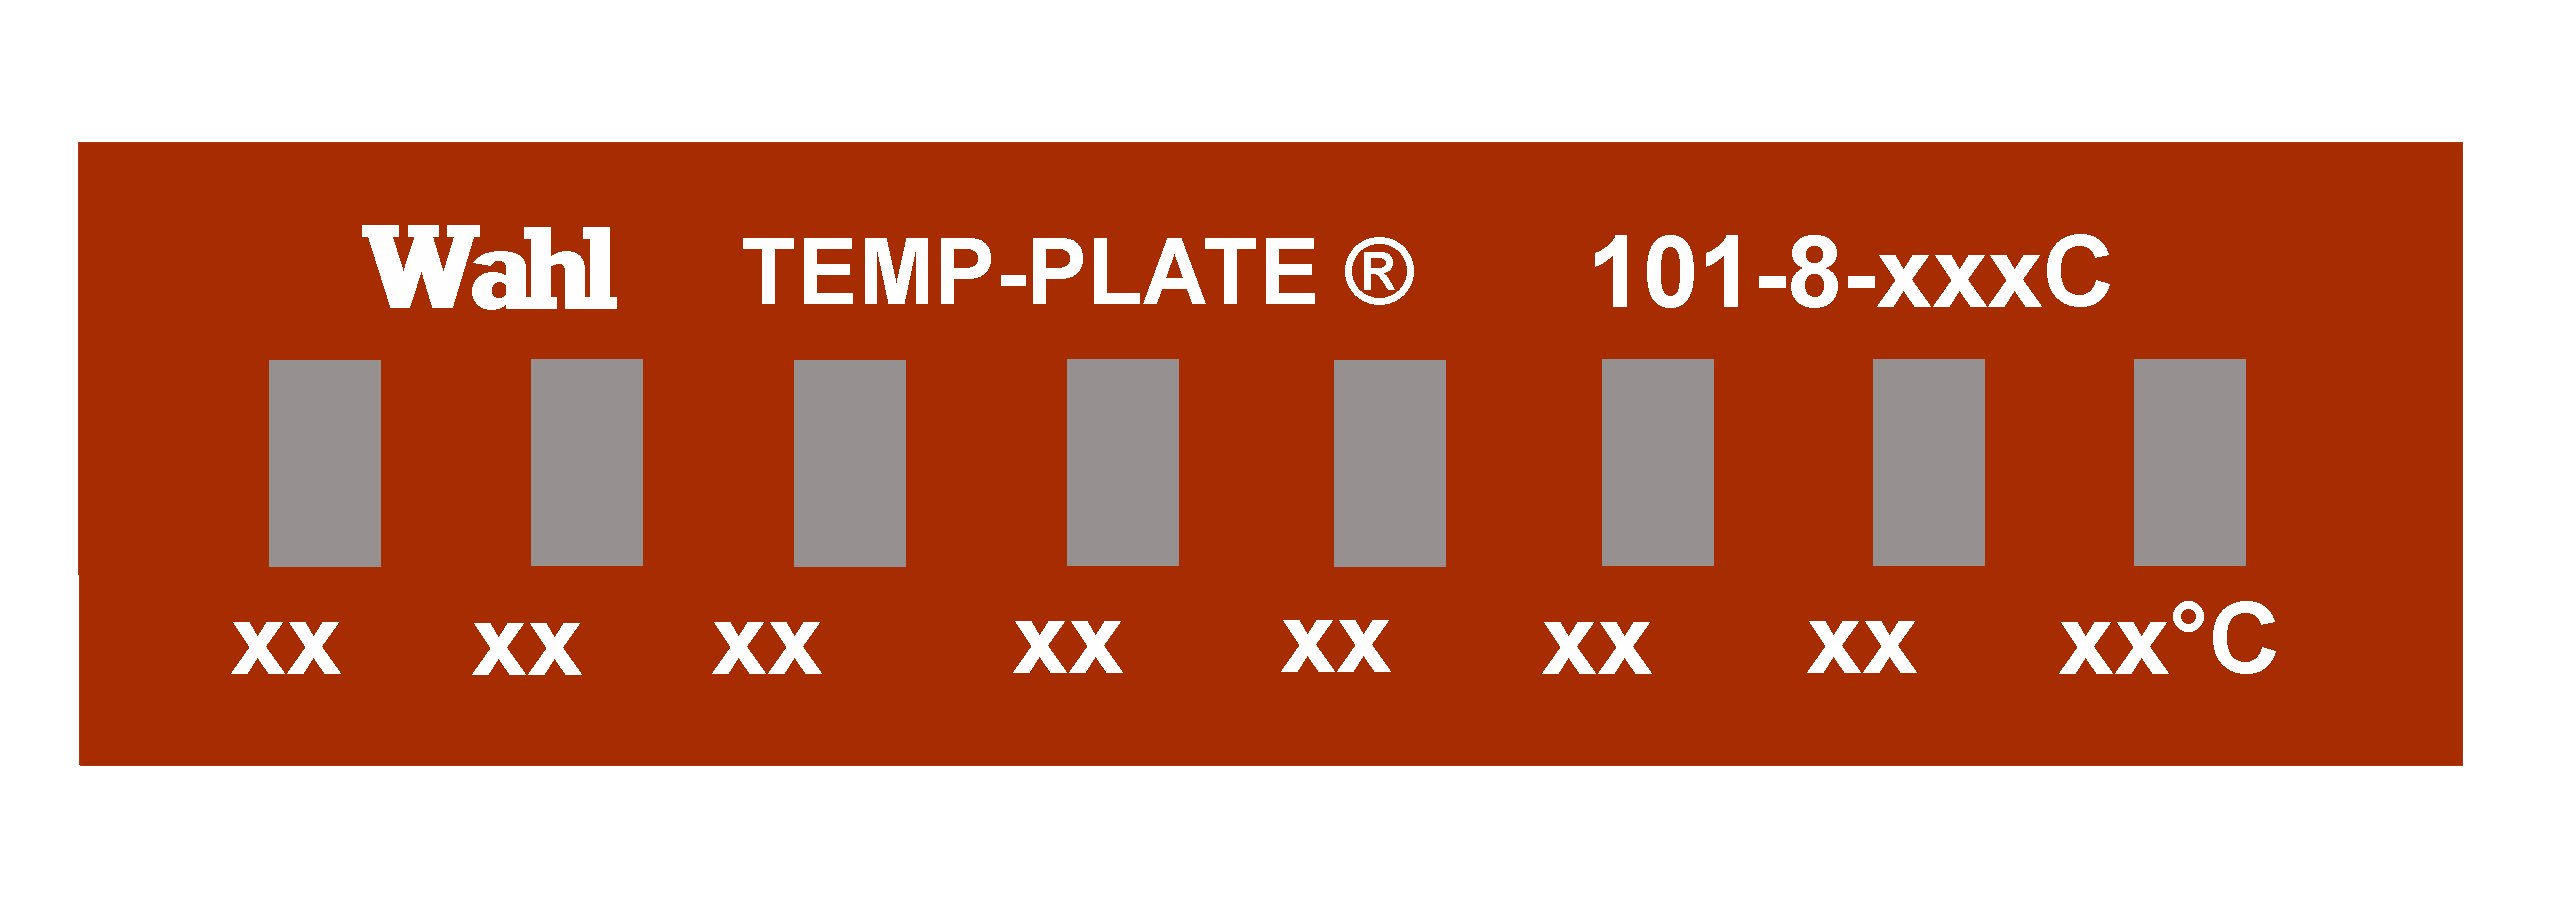 Wahl 101-8-087C Mylar Mini Eight-Position Temp-Plate, 87-93-98-104-110-115-121-126 Degrees C Positions, 1.5'' Width x 0.38'' Height (Box of 10 labels)